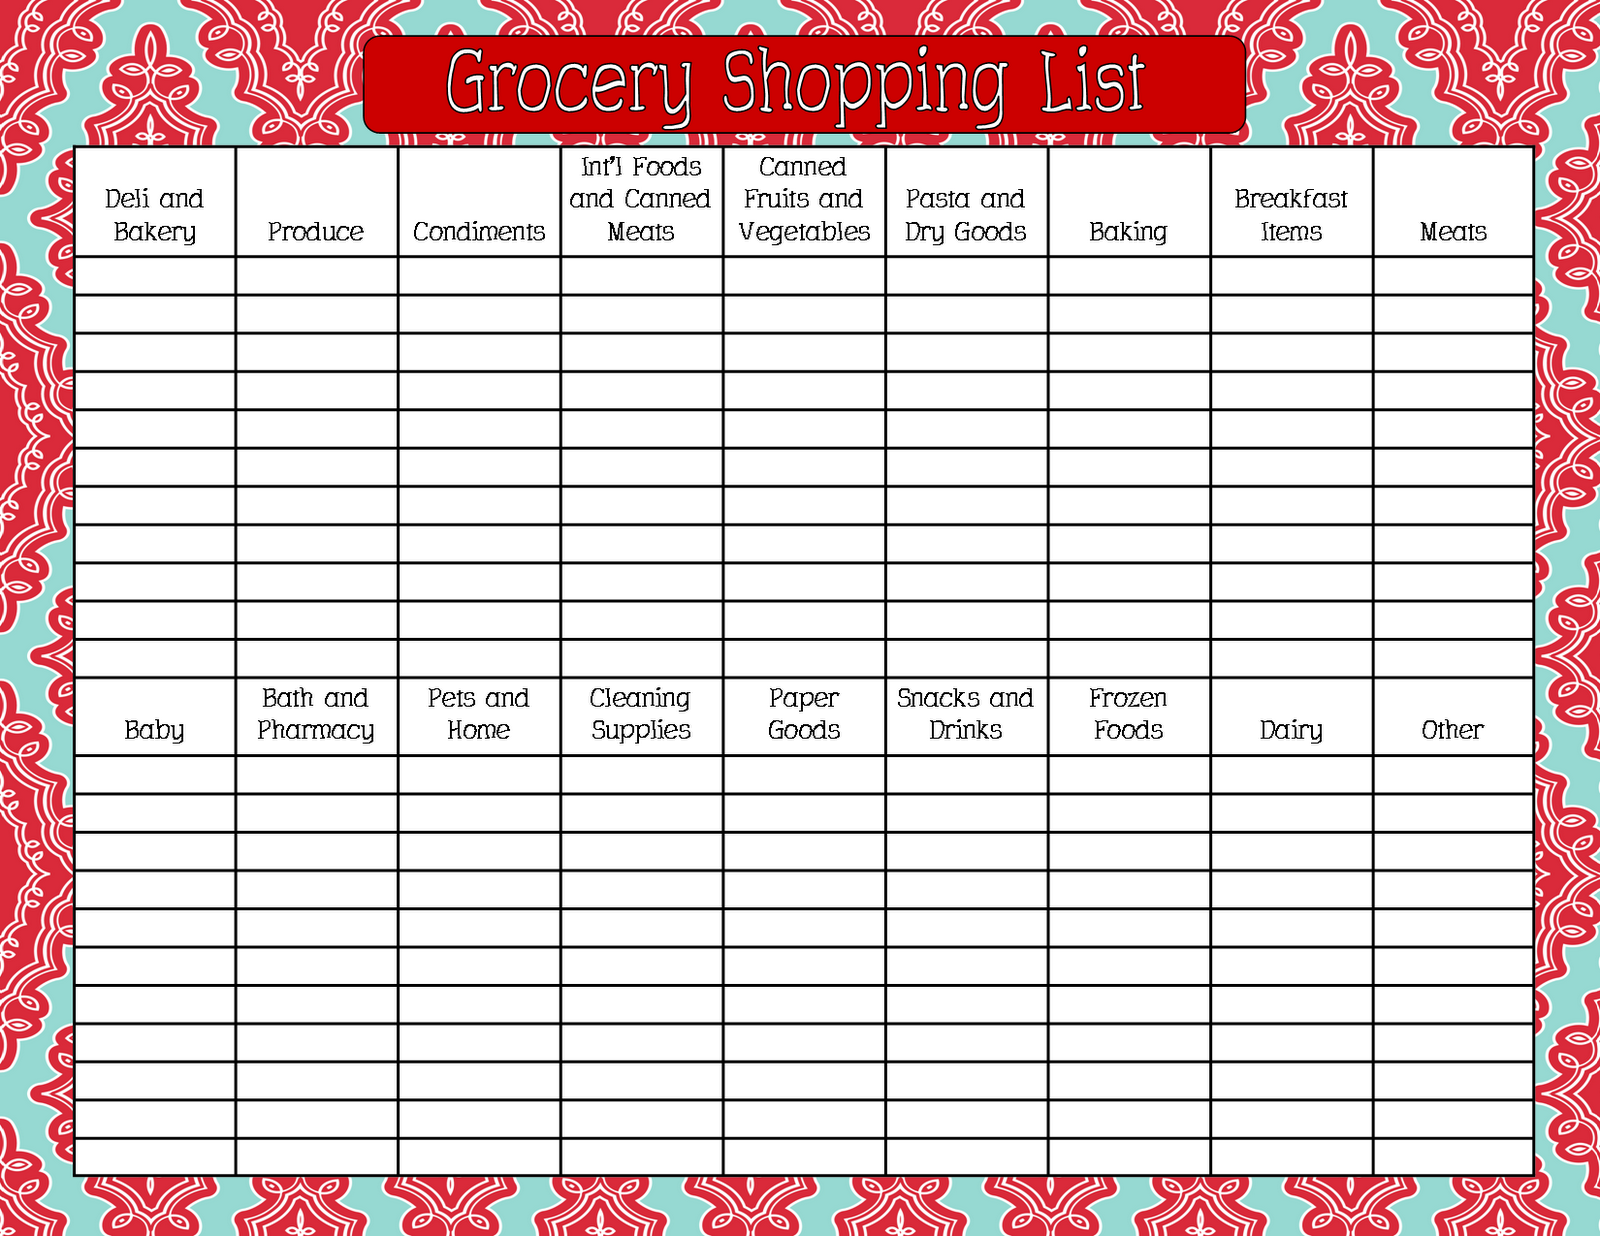 Grocery Shopping List Printable  Shopping Lists Organizations